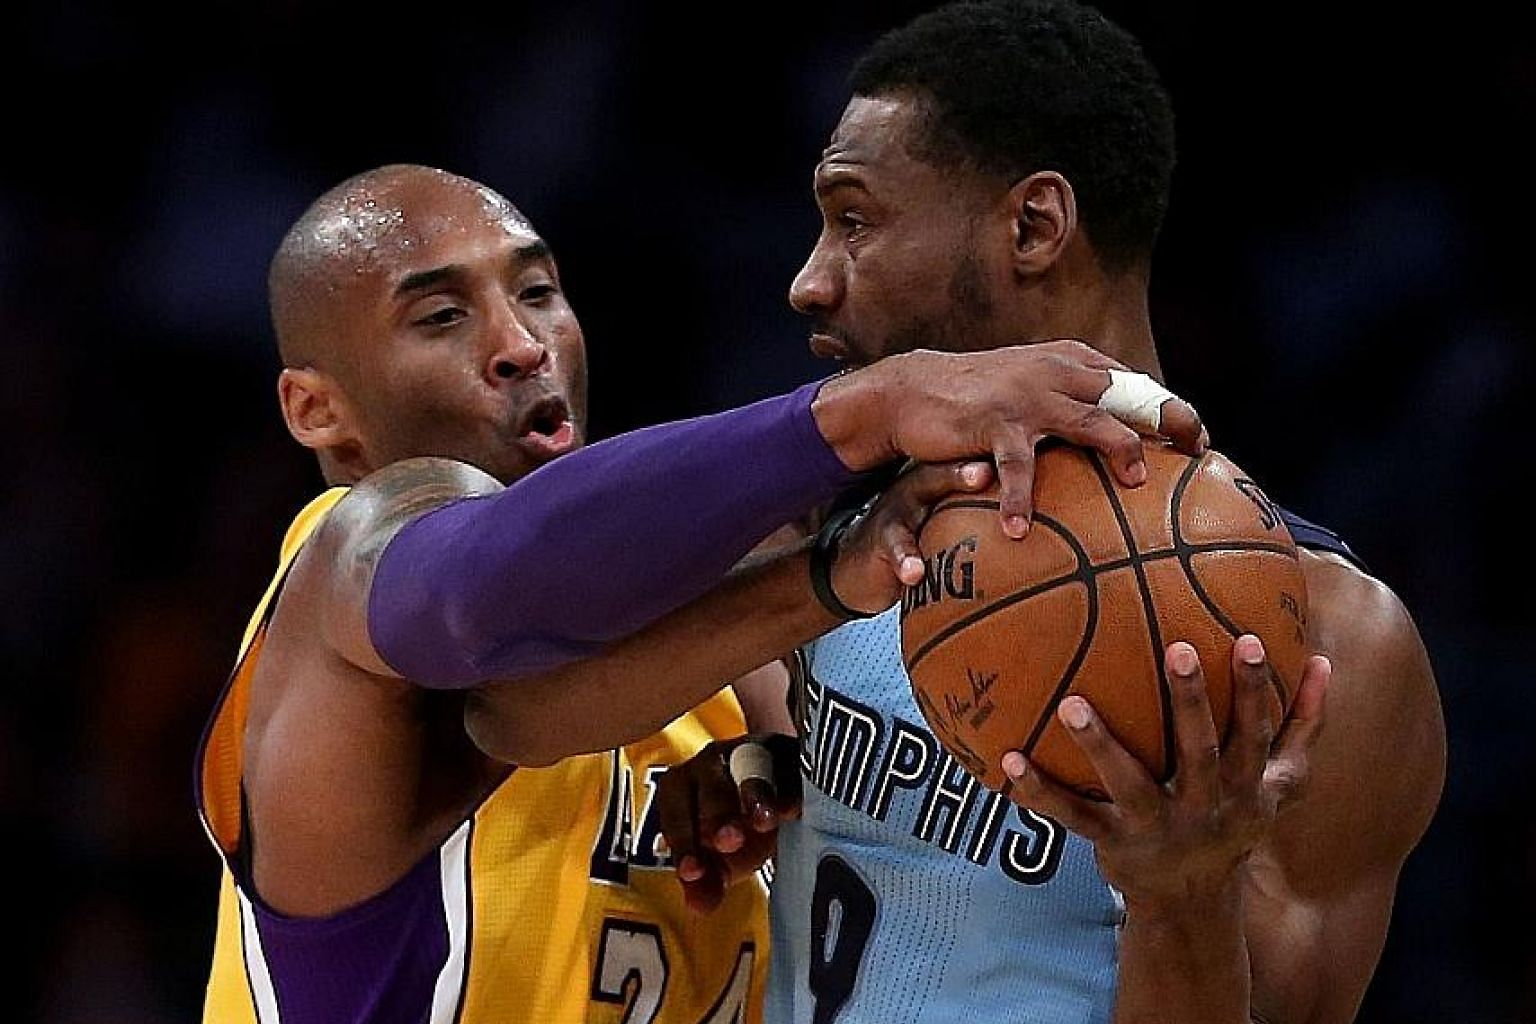 The Lakers' Kobe Bryant (No. 24) tussling for the ball with the Grizzlies' Tony Allen during their match at Staples Centre. The home side won 107-100 to end a four-game losing streak.